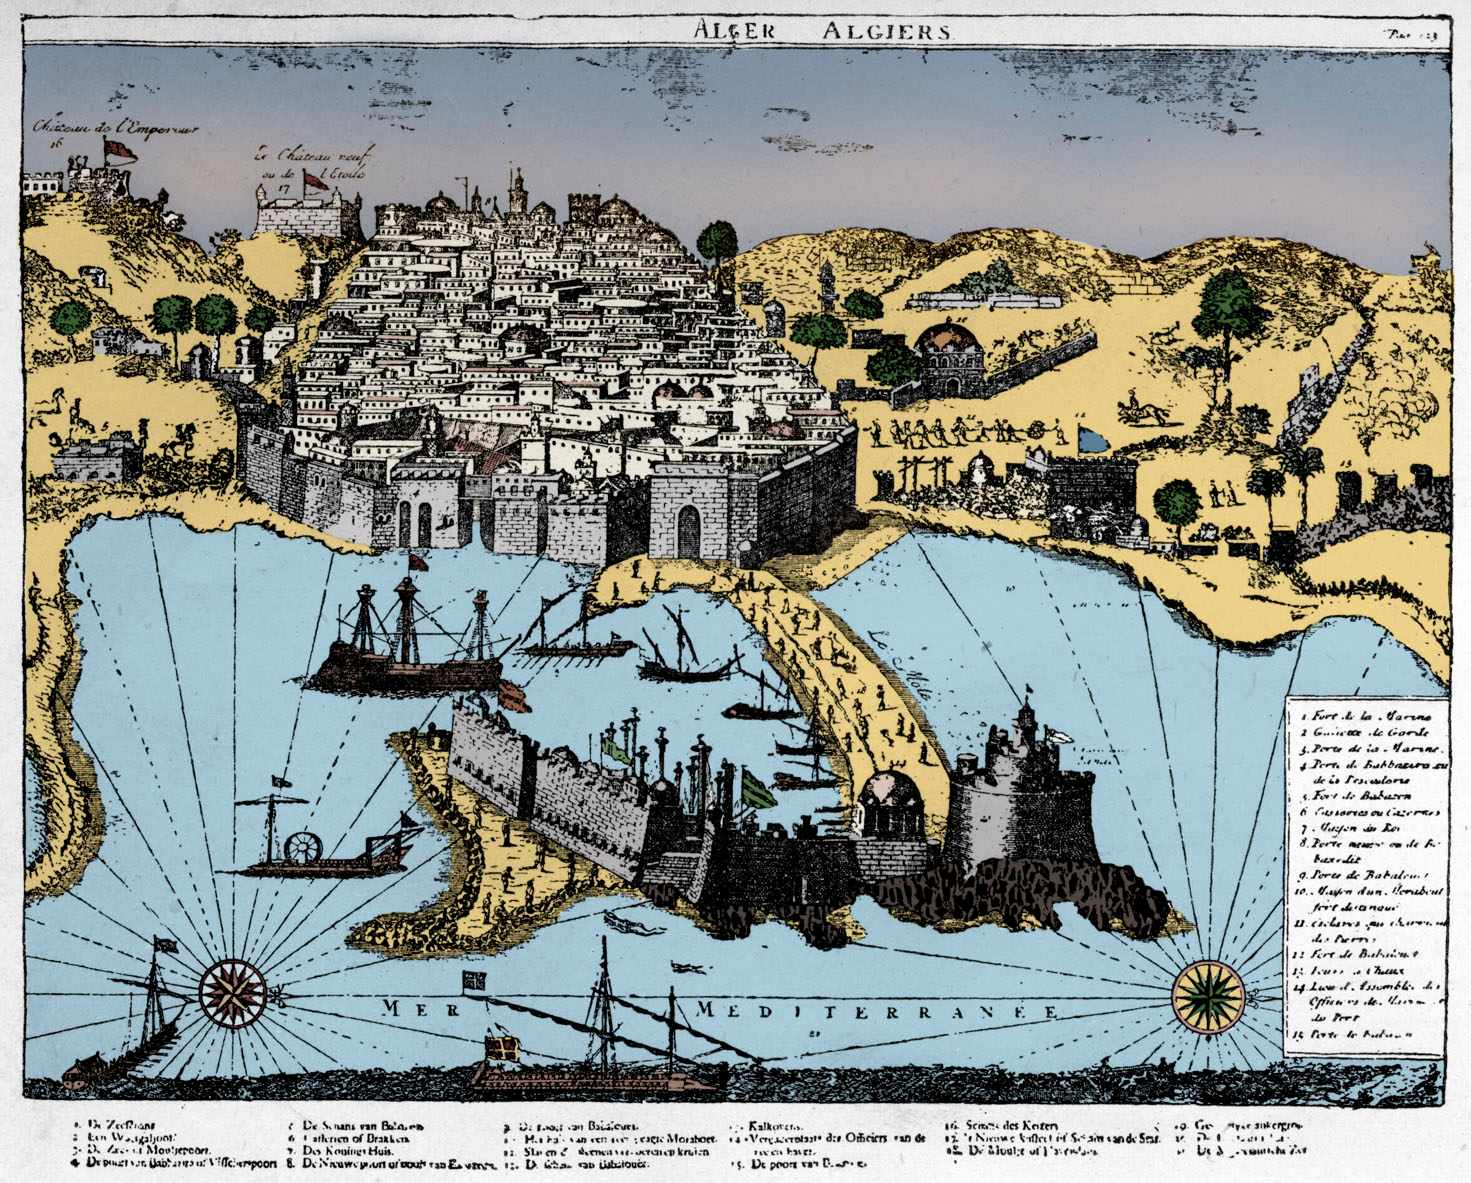 Map of Algiers, c1700. It was here that Icelanders, including Ólafur Egilsson, were sold into slavery. (Culture Club/Getty Images)